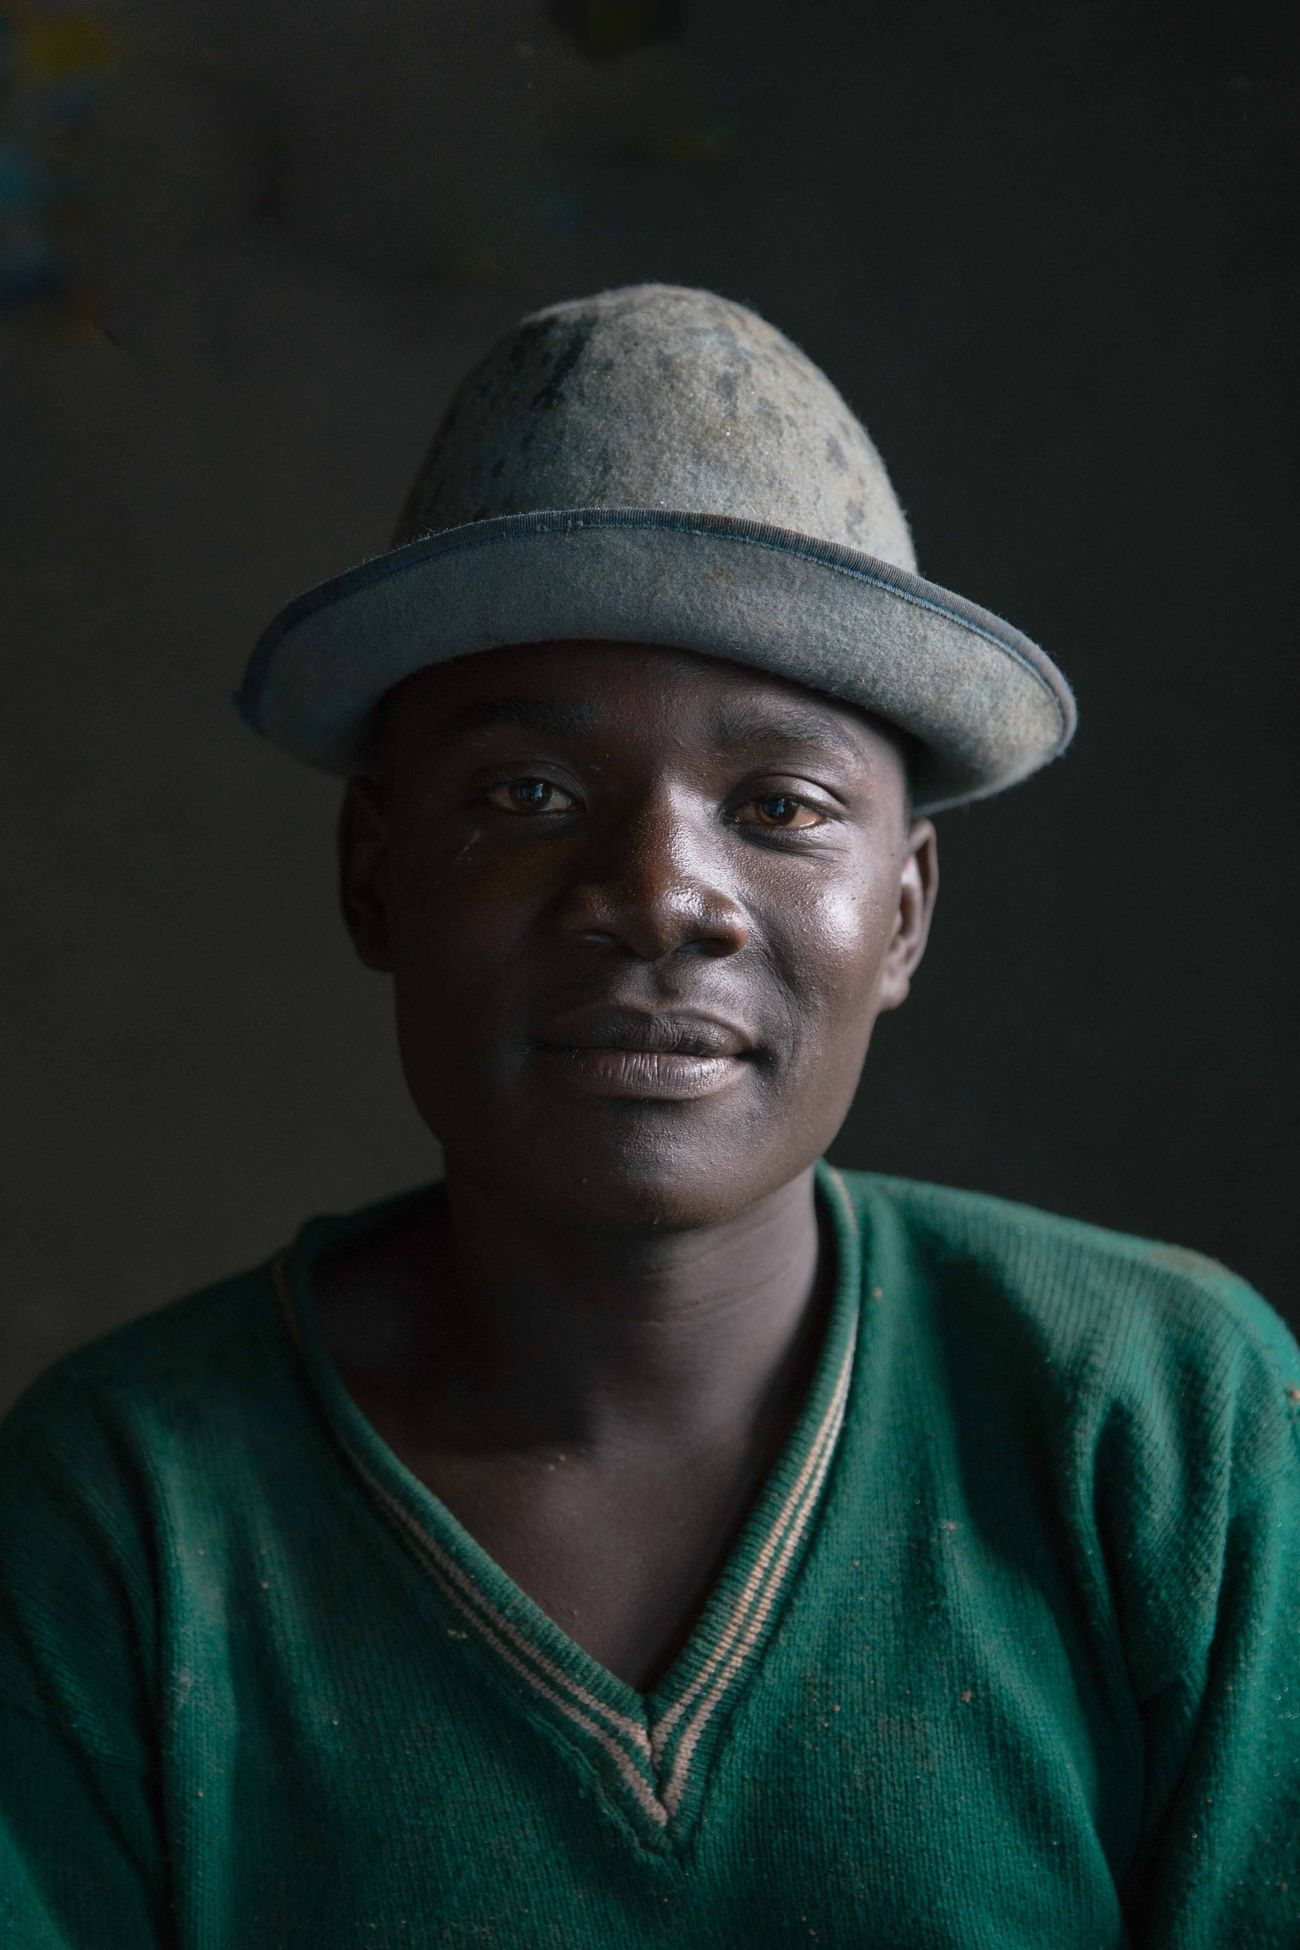 The Portraitist - 2017 EyeEm Awards I met Cyriaque whilst in Rwanda. With a storm brewing and pregnant with precipitation, the clouds graced Rwandan soil with rain . Whilst fumbling in my backpack for my coat, Cyriaque saw me getting wet and invited me into the courtyard of a house on the roadside. His grey felt hat caught my attention as the rain welled up and dripped from the brim. Once I was invited inside to shelter a single window cast a beautiful soft light on any shape or form it touched. Cyriaque and his grey hat was once such form. The Portraitist - 2017 EyeEm Awards